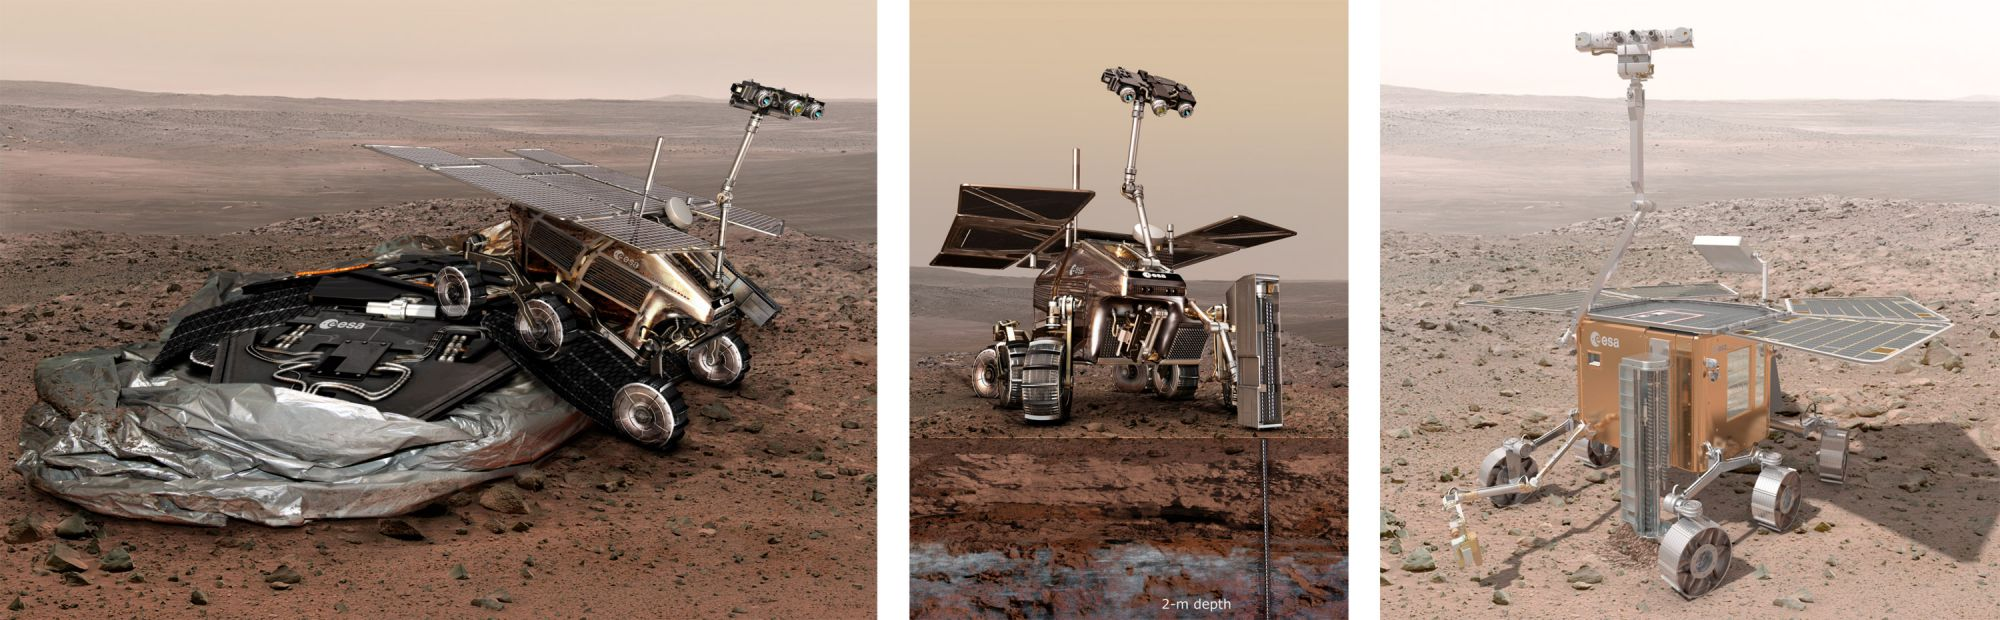 exomars18-concepts-rovers-esa